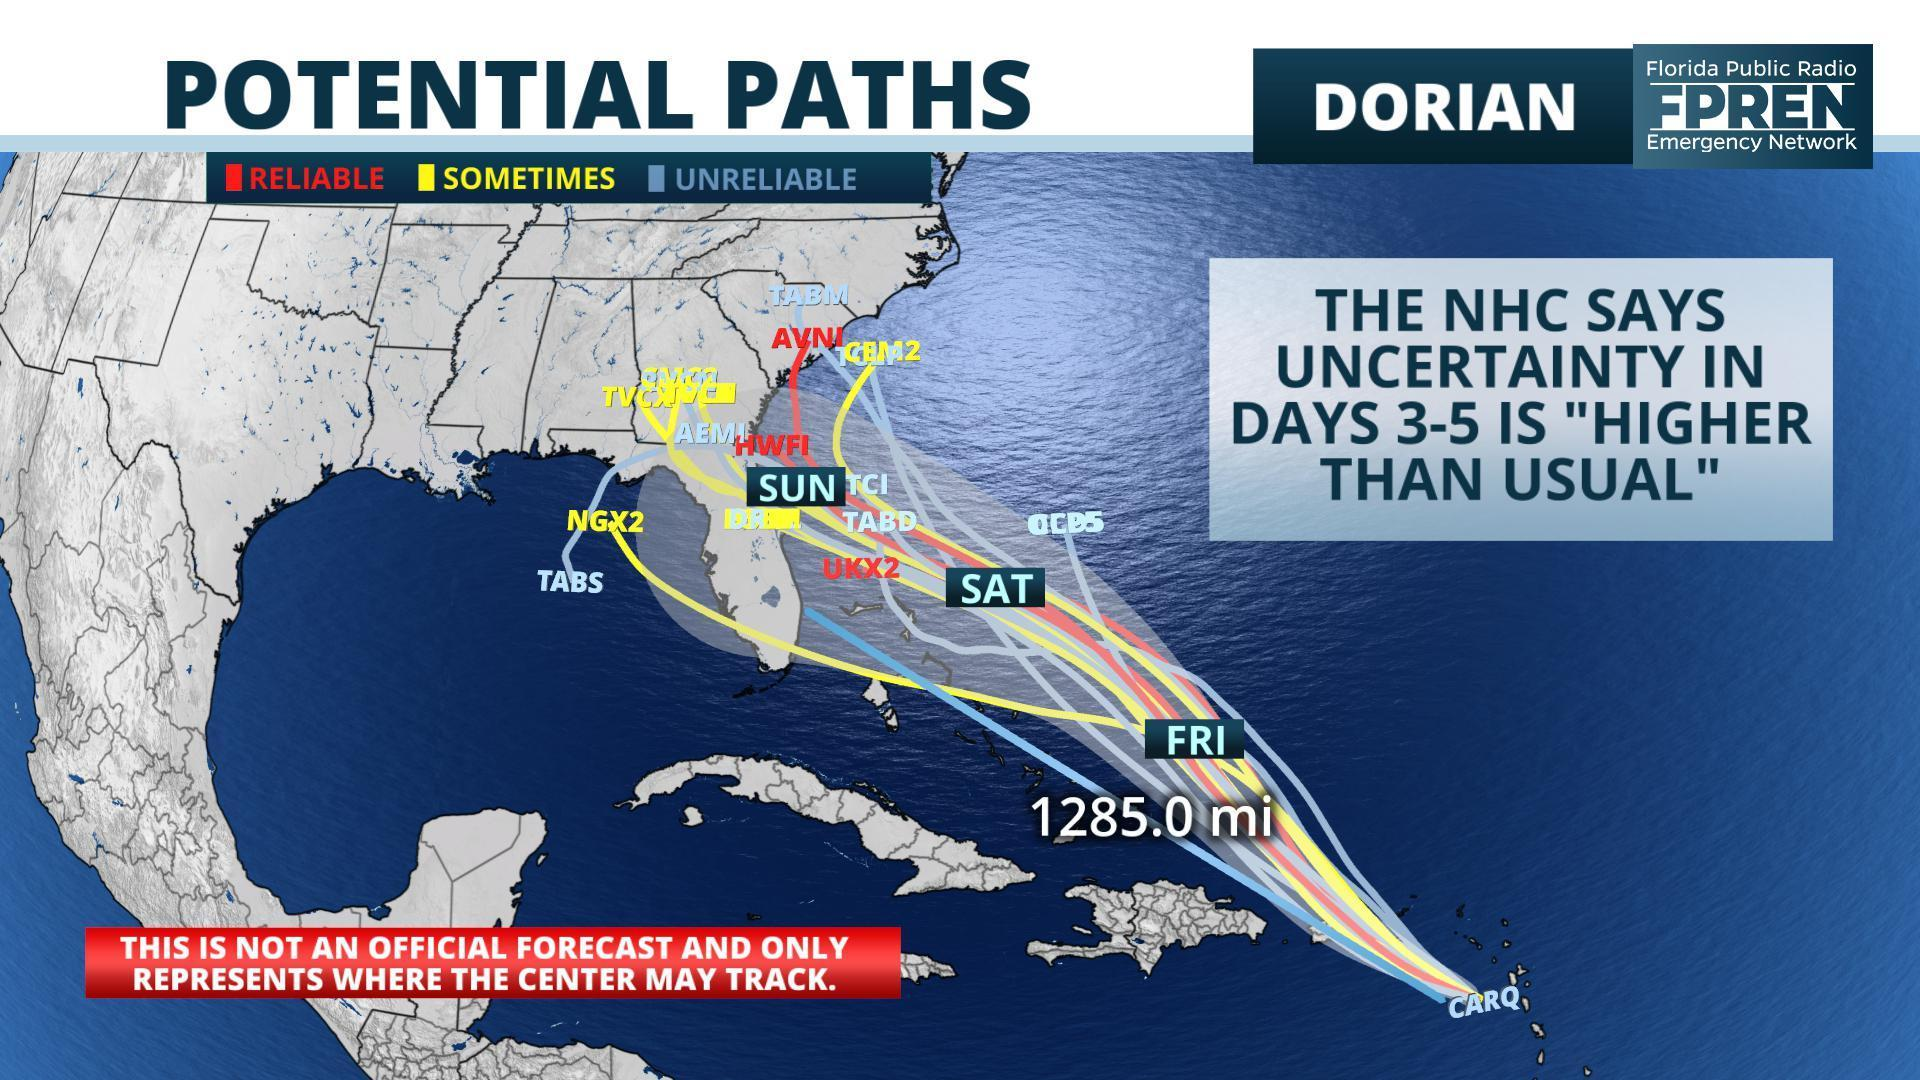 The potential tracks for Tropical Storm Dorian. FLORIDA PUBLIC RADIO EMERGENCY NETWORK